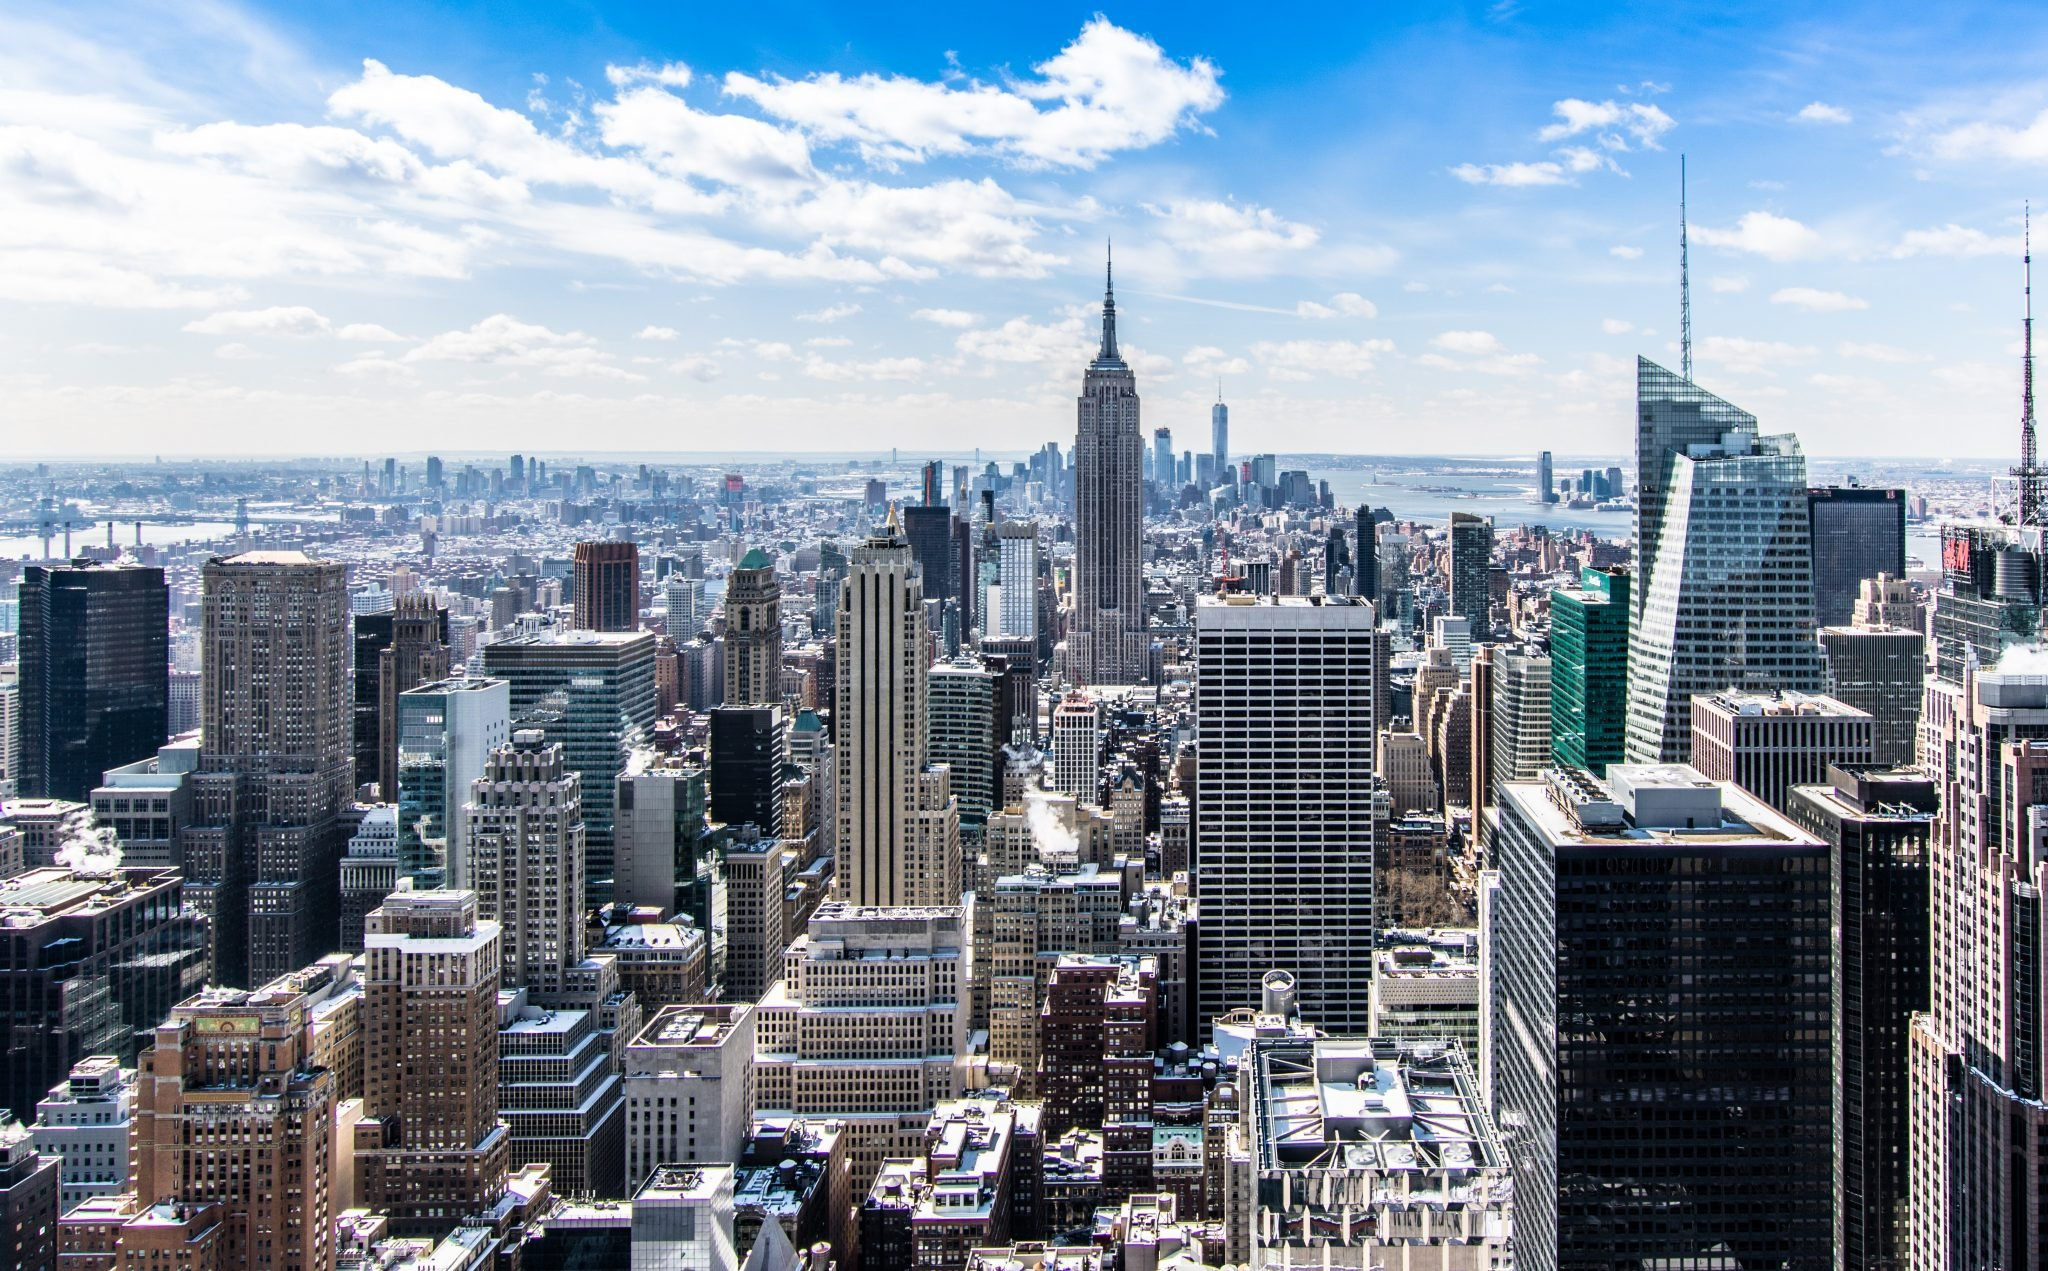 The top 5 most Popular Trips people take from New York